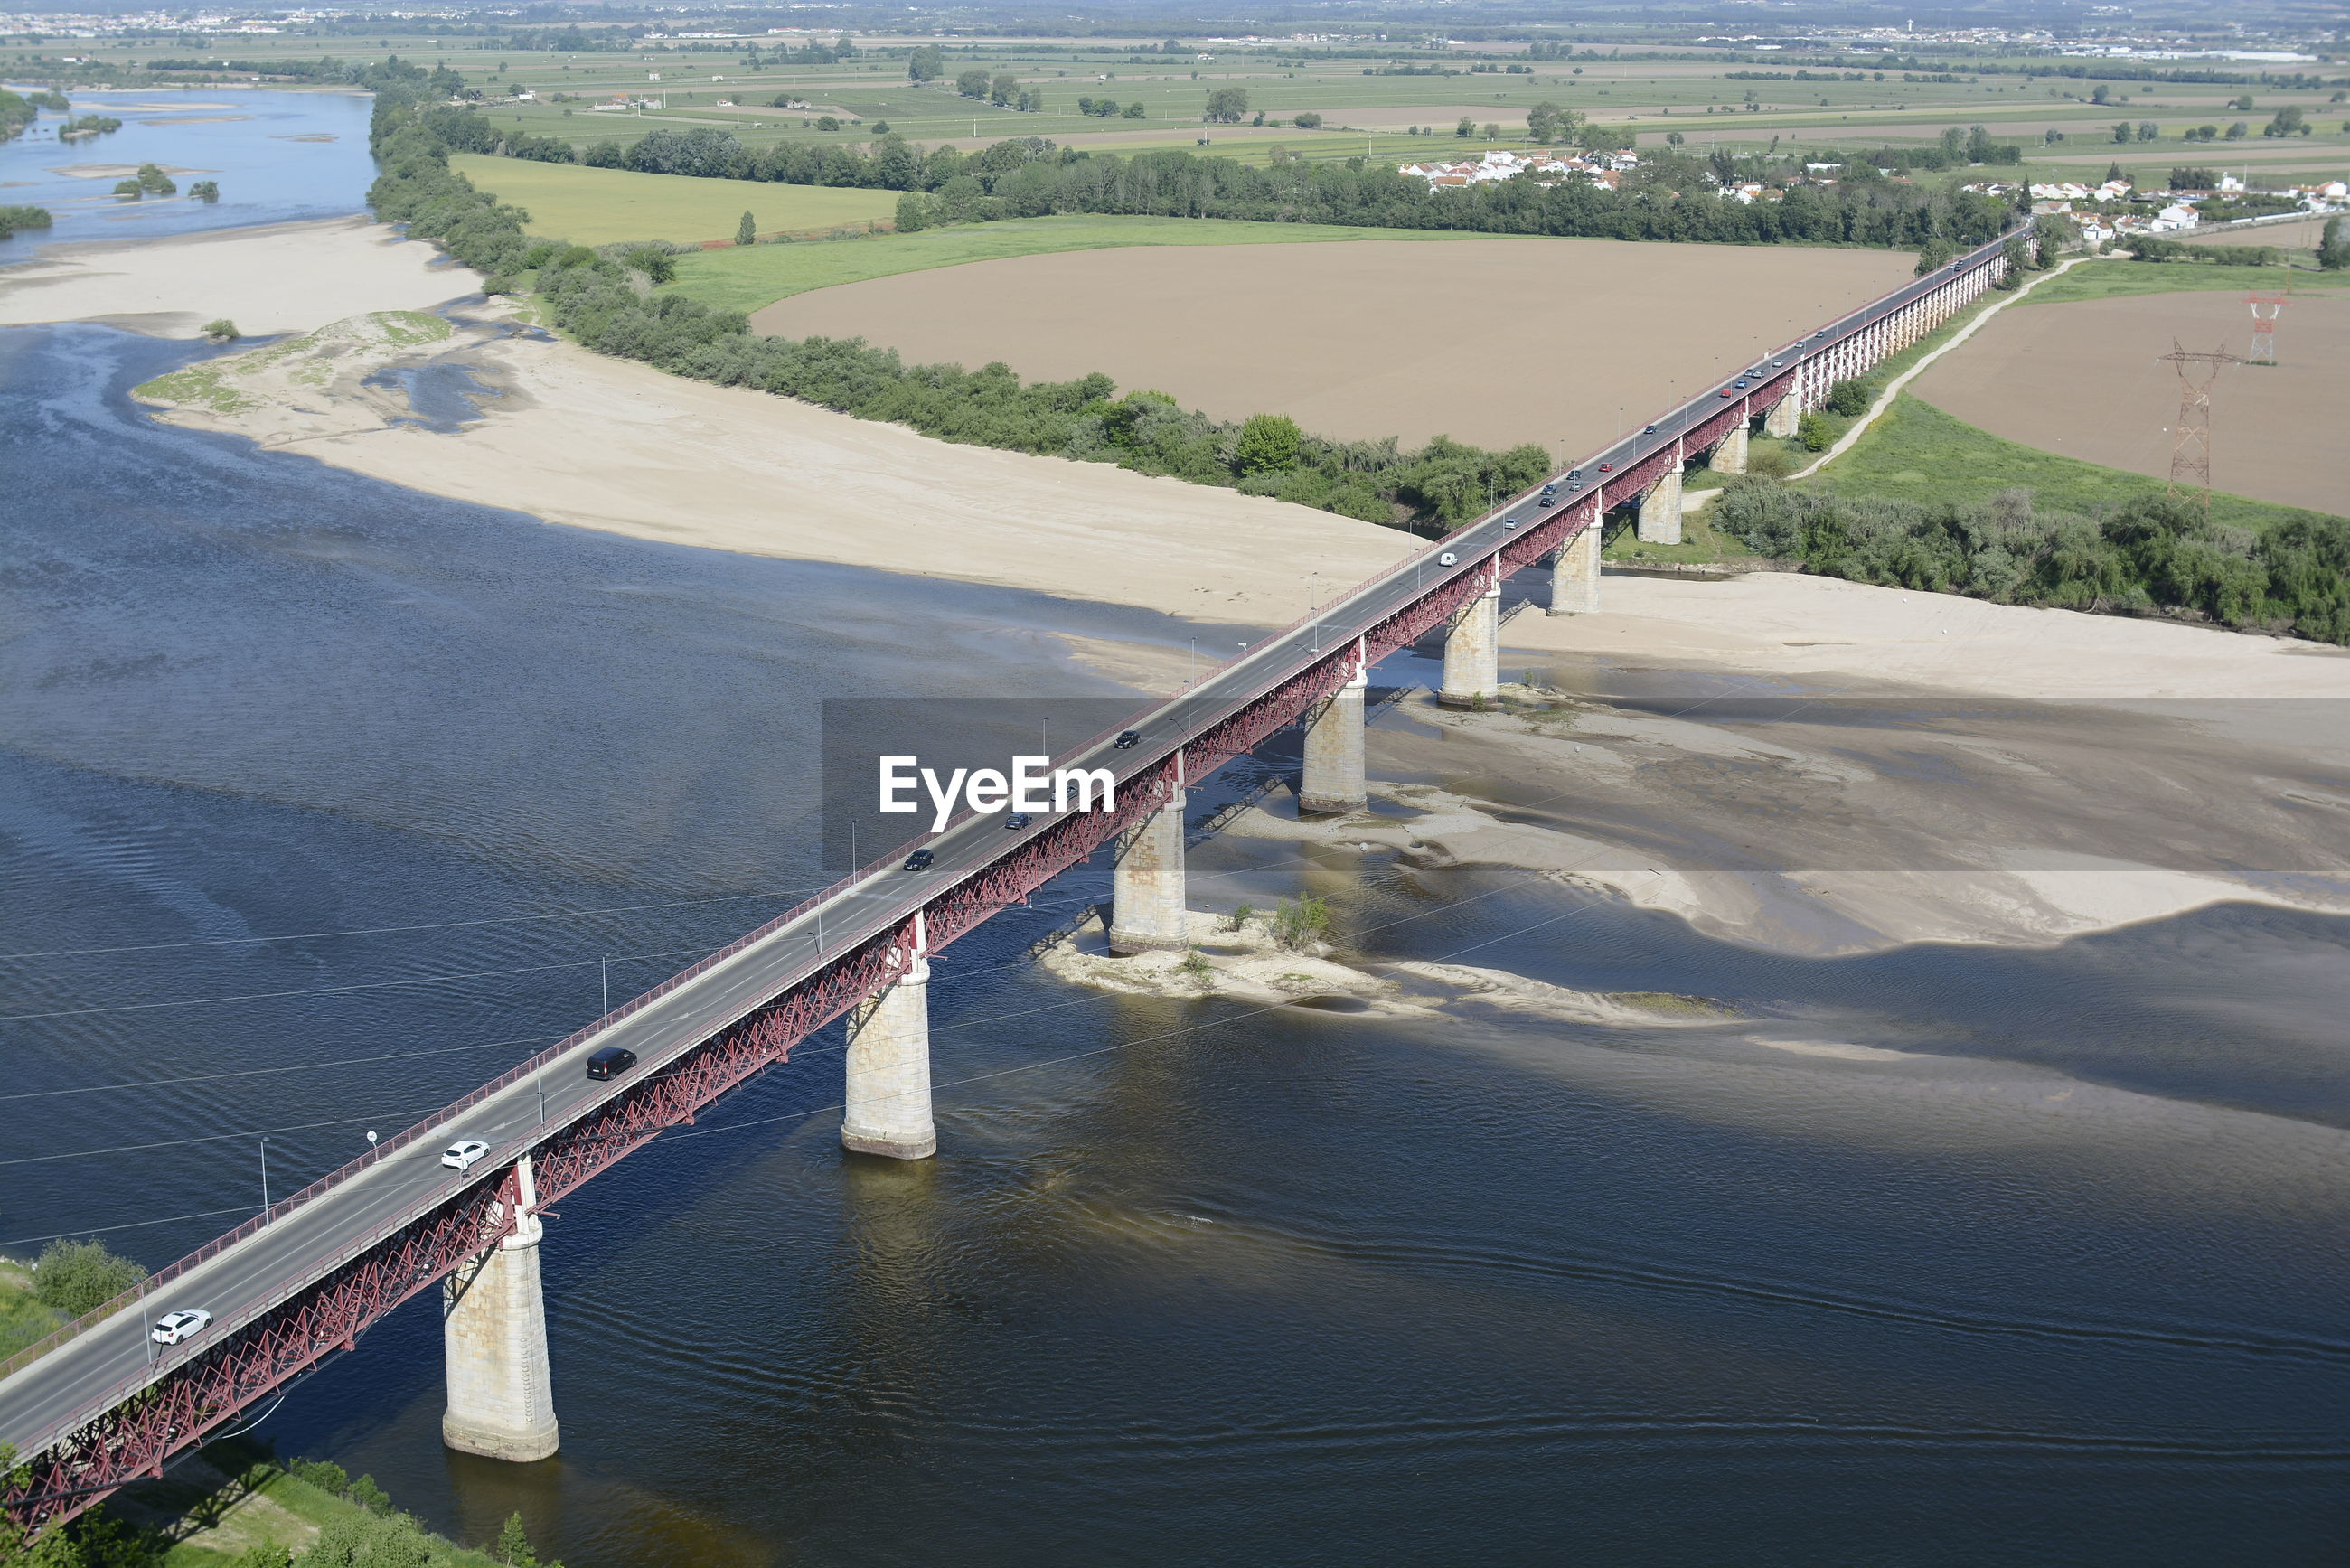 HIGH ANGLE VIEW OF BRIDGE OVER RIVER BY LANDSCAPE